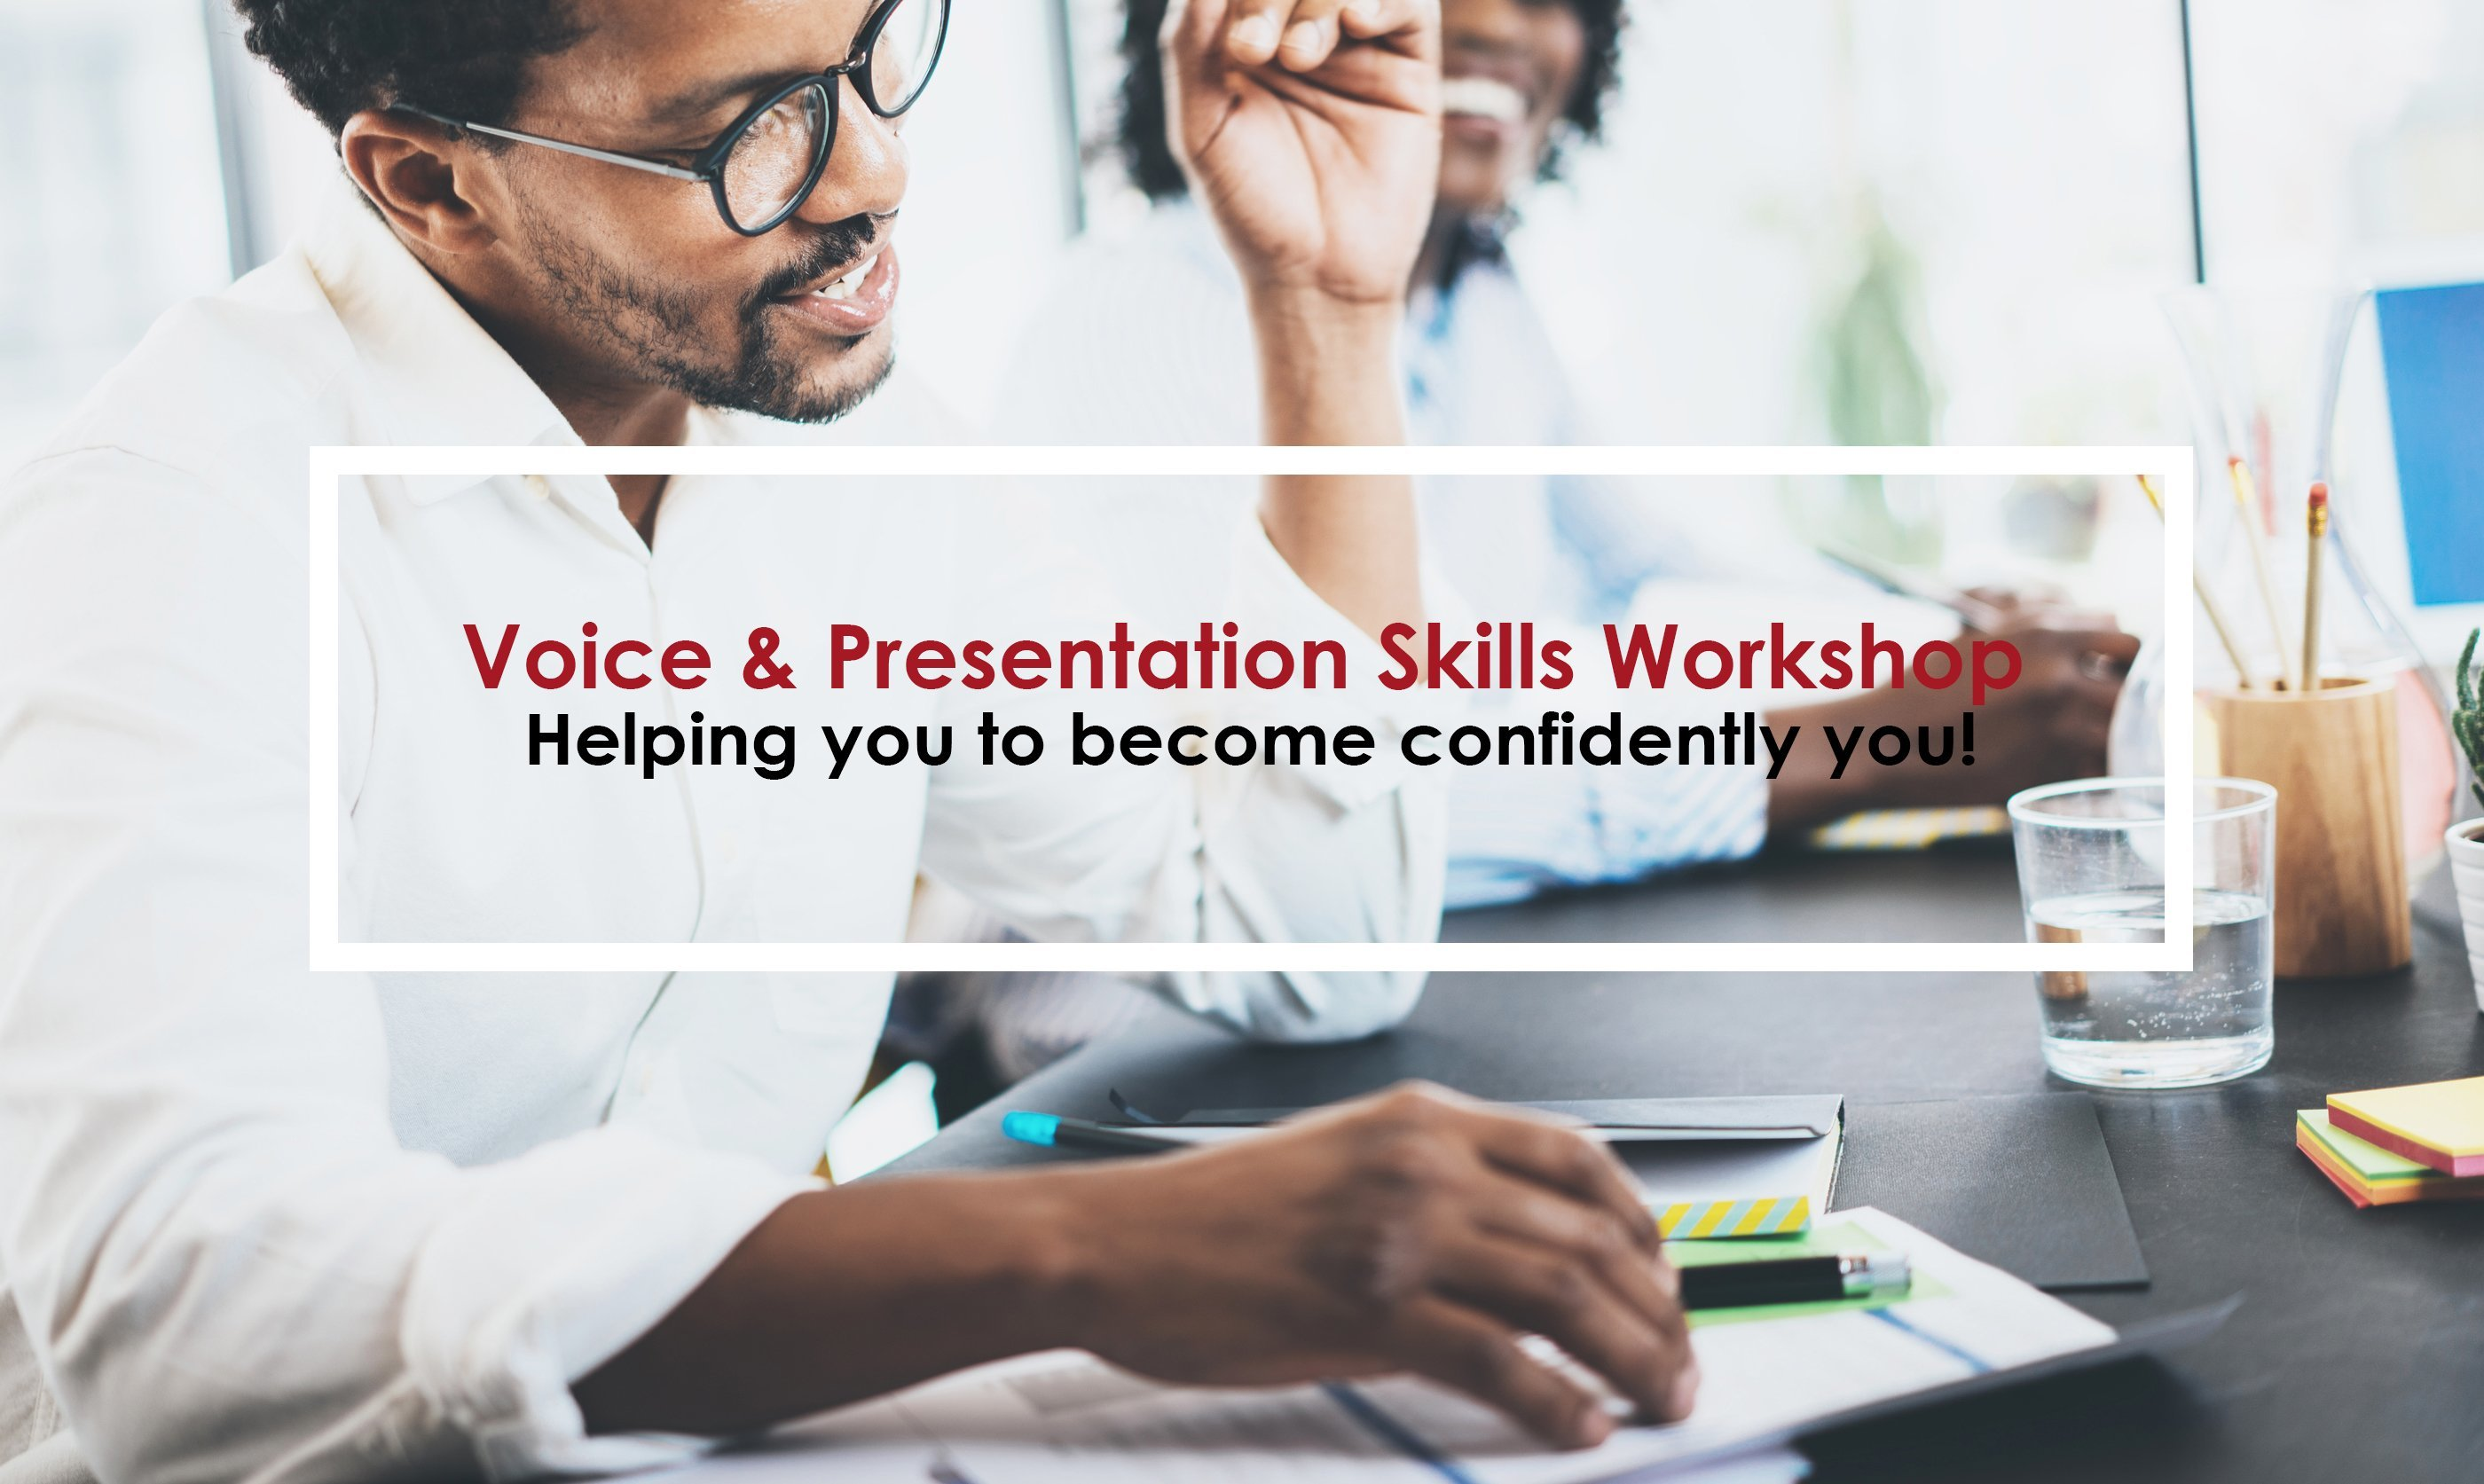 Voice and Presentation Skills Workshop - Helping you to become confidently you!